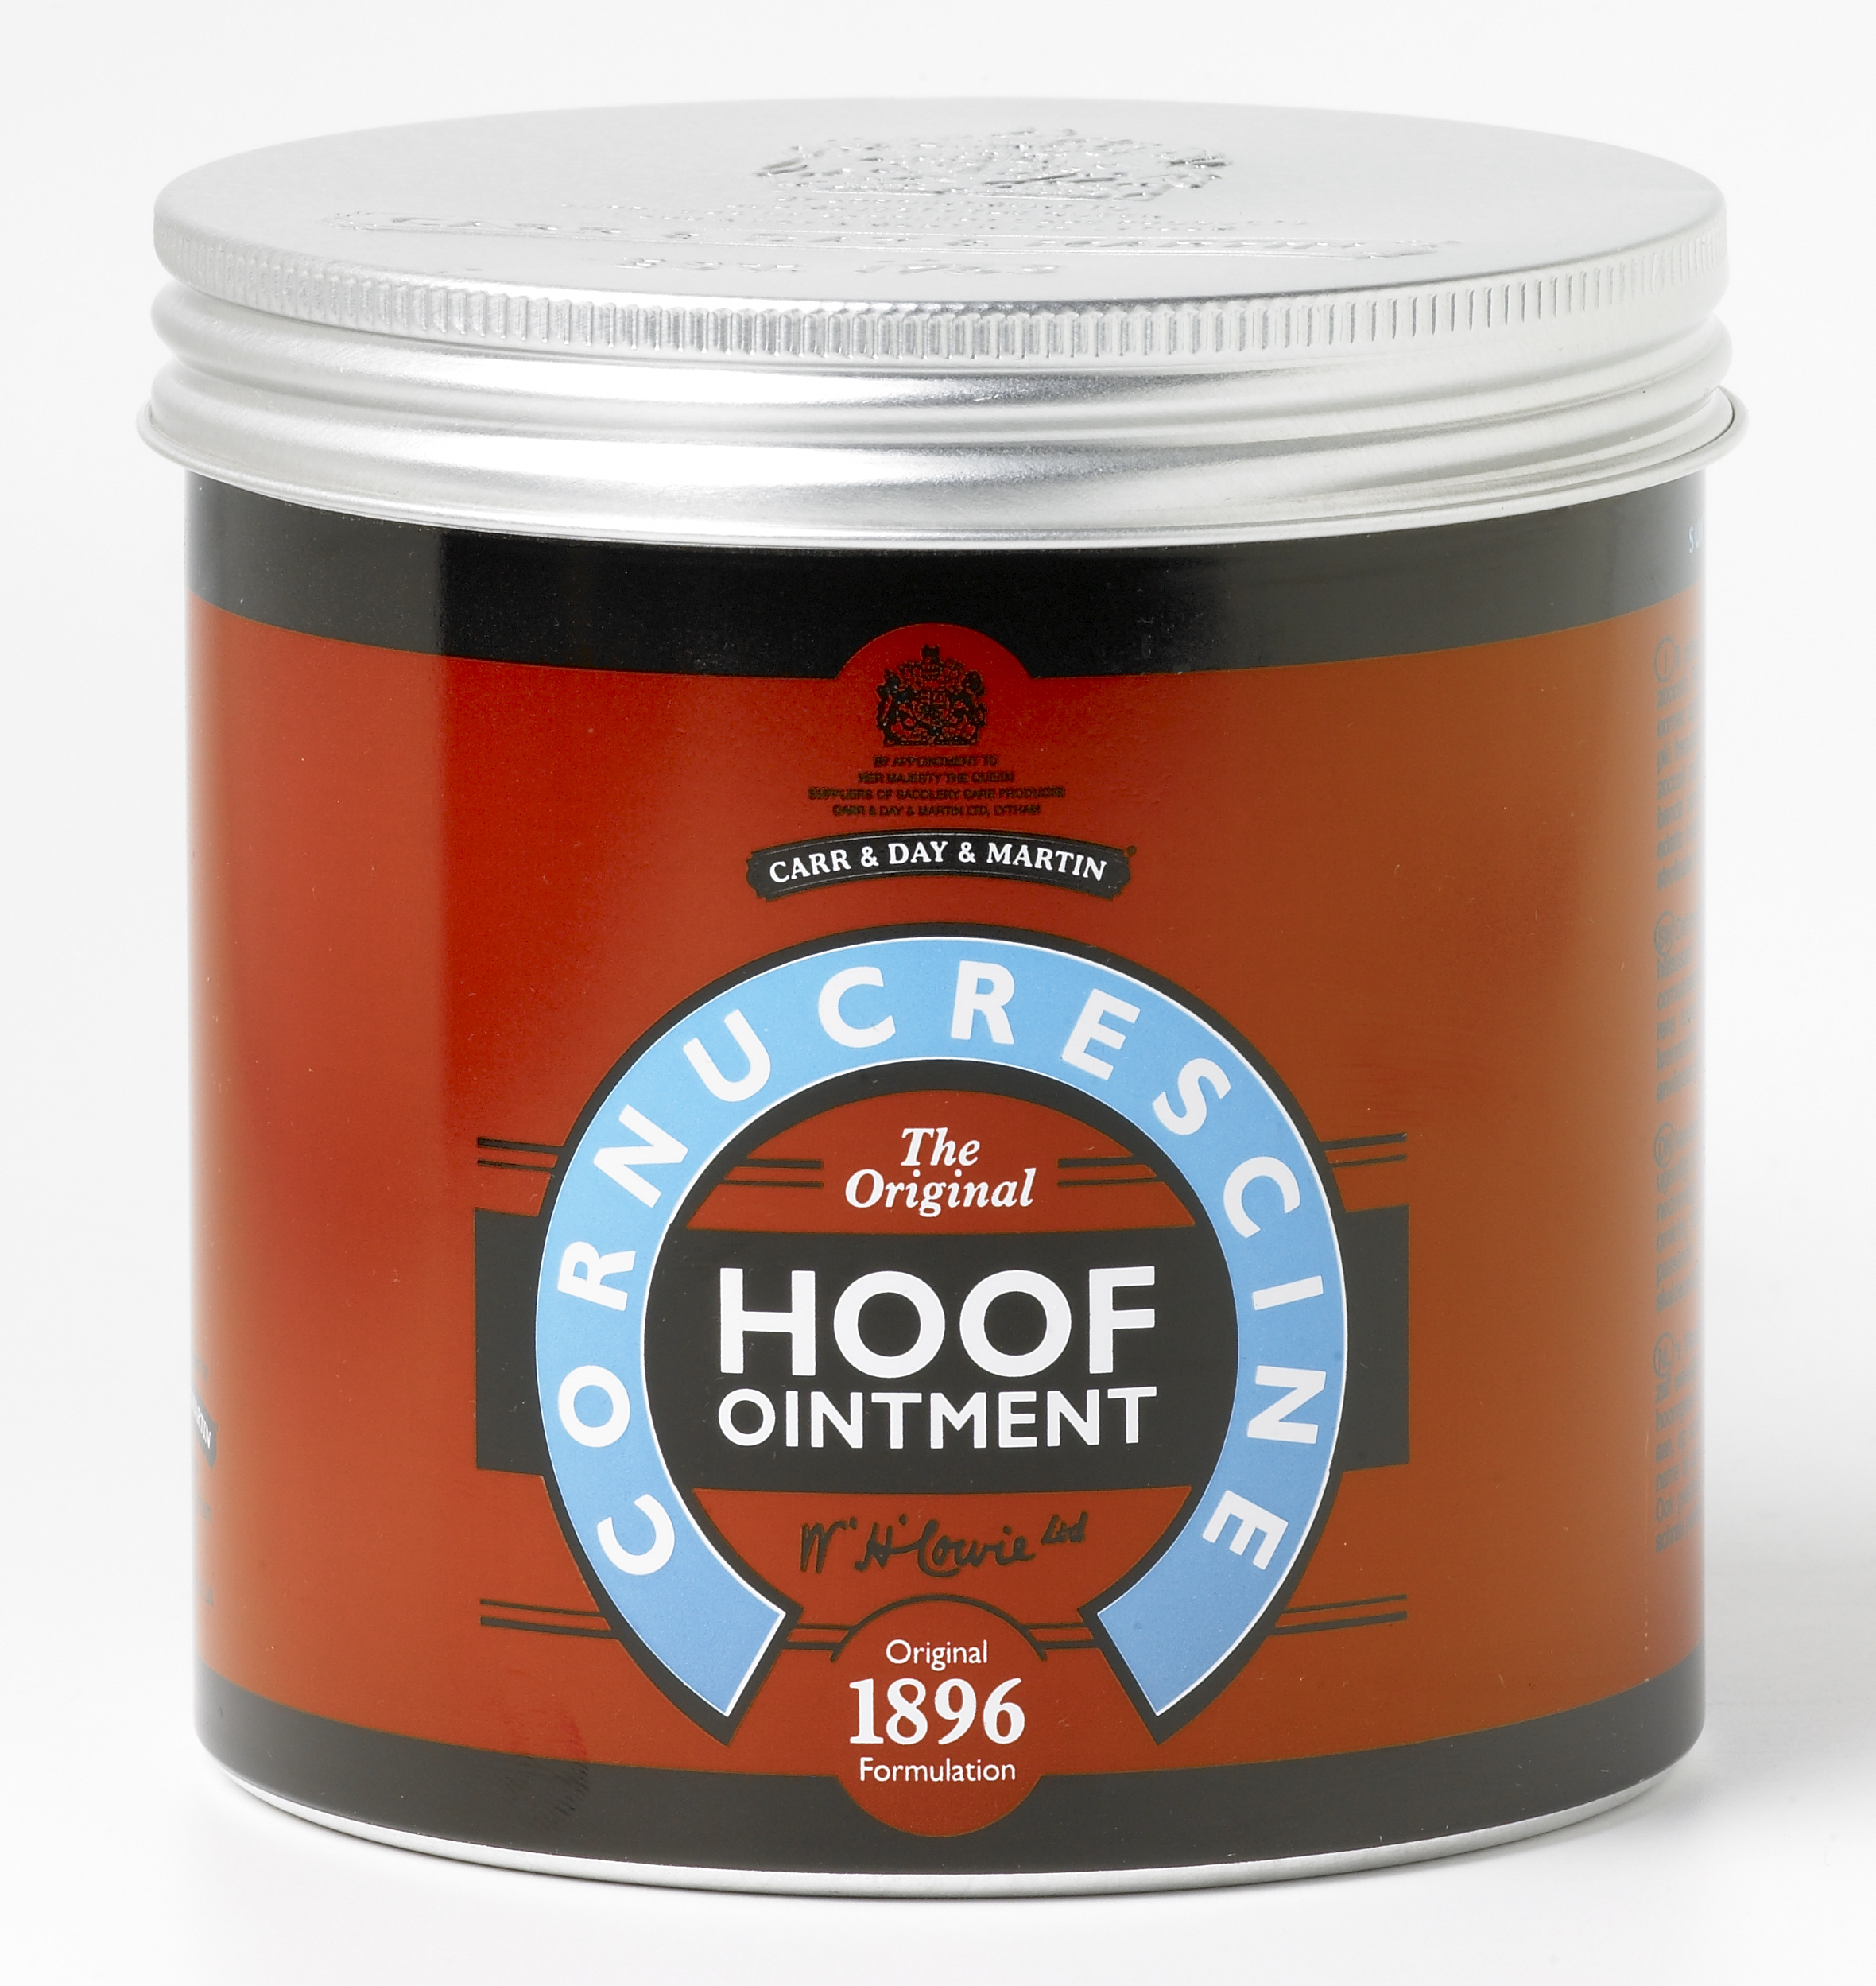 Carr & Day & Martin Cornucrescine Daily Hoof Ointment for Horses